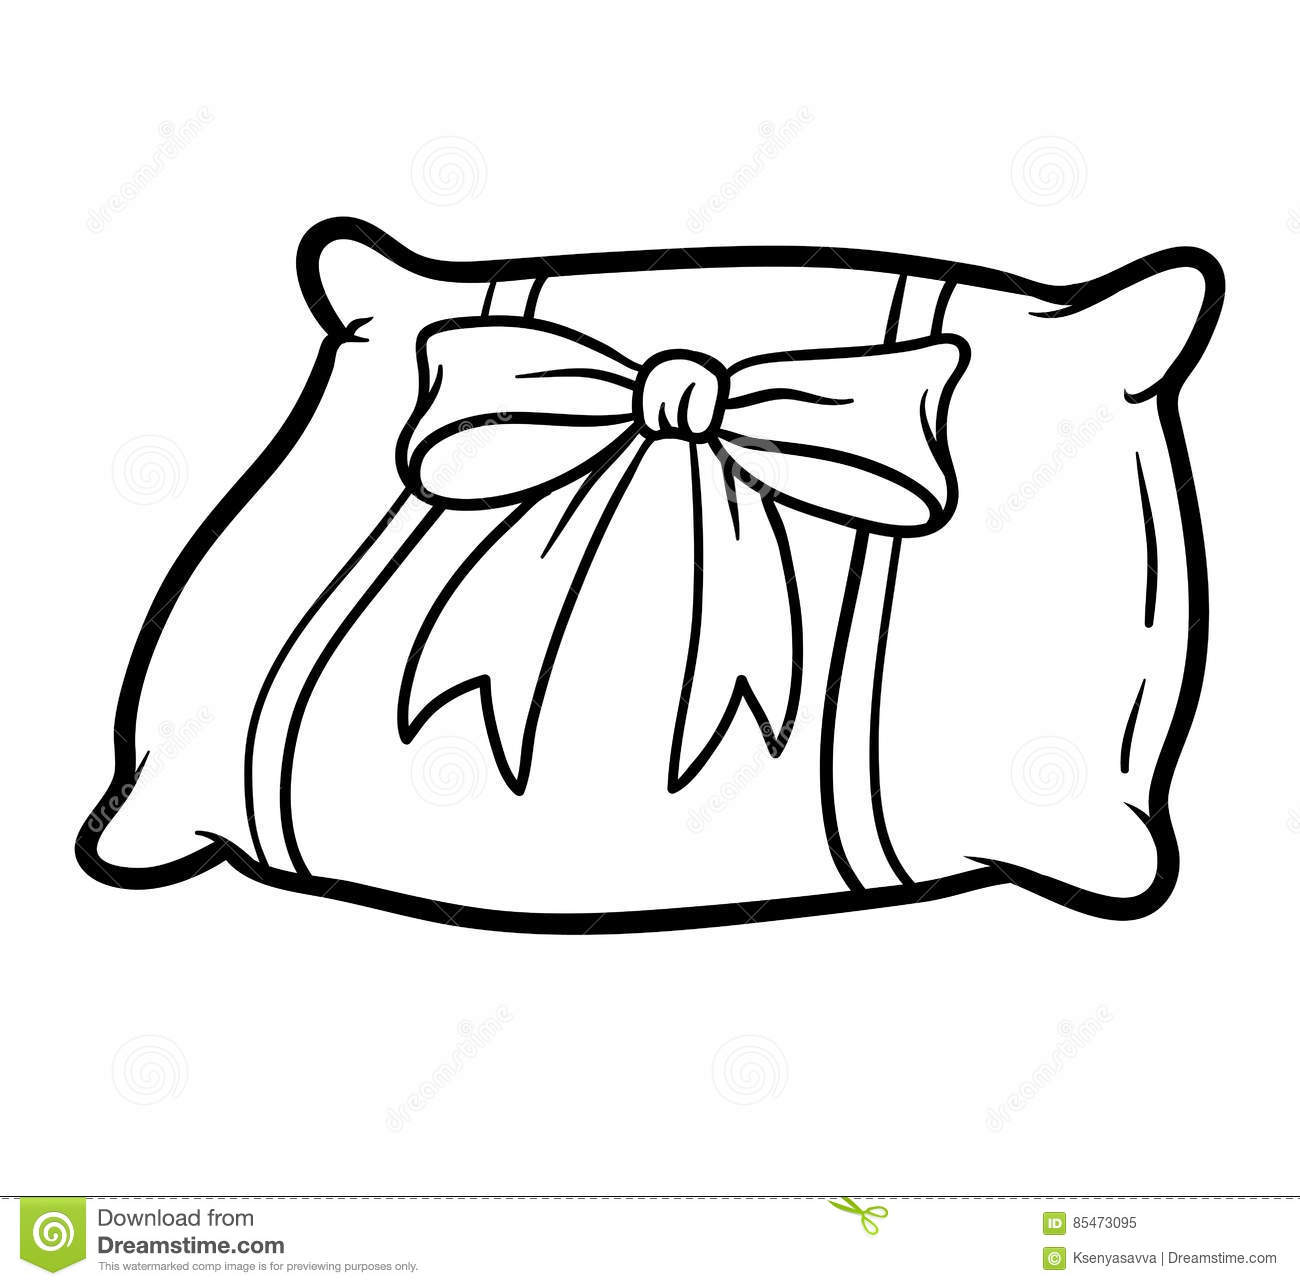 Pillow clipart coloring Download Pillow coloring drawings Pillow